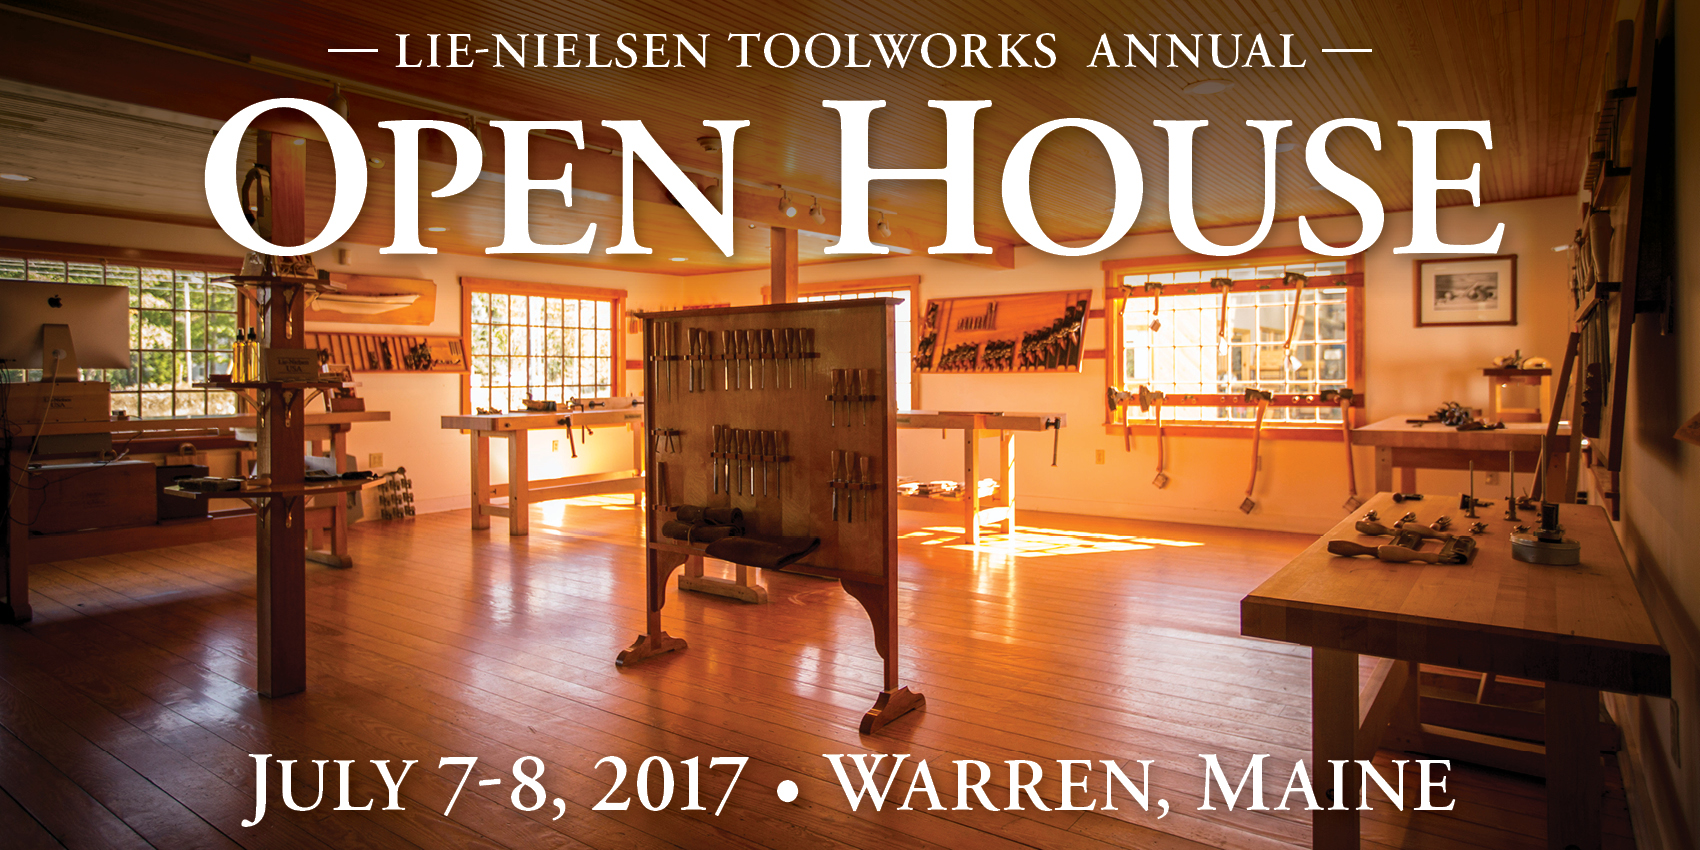 Lie-Nielsen Annual Open House: July 7-8, 2017